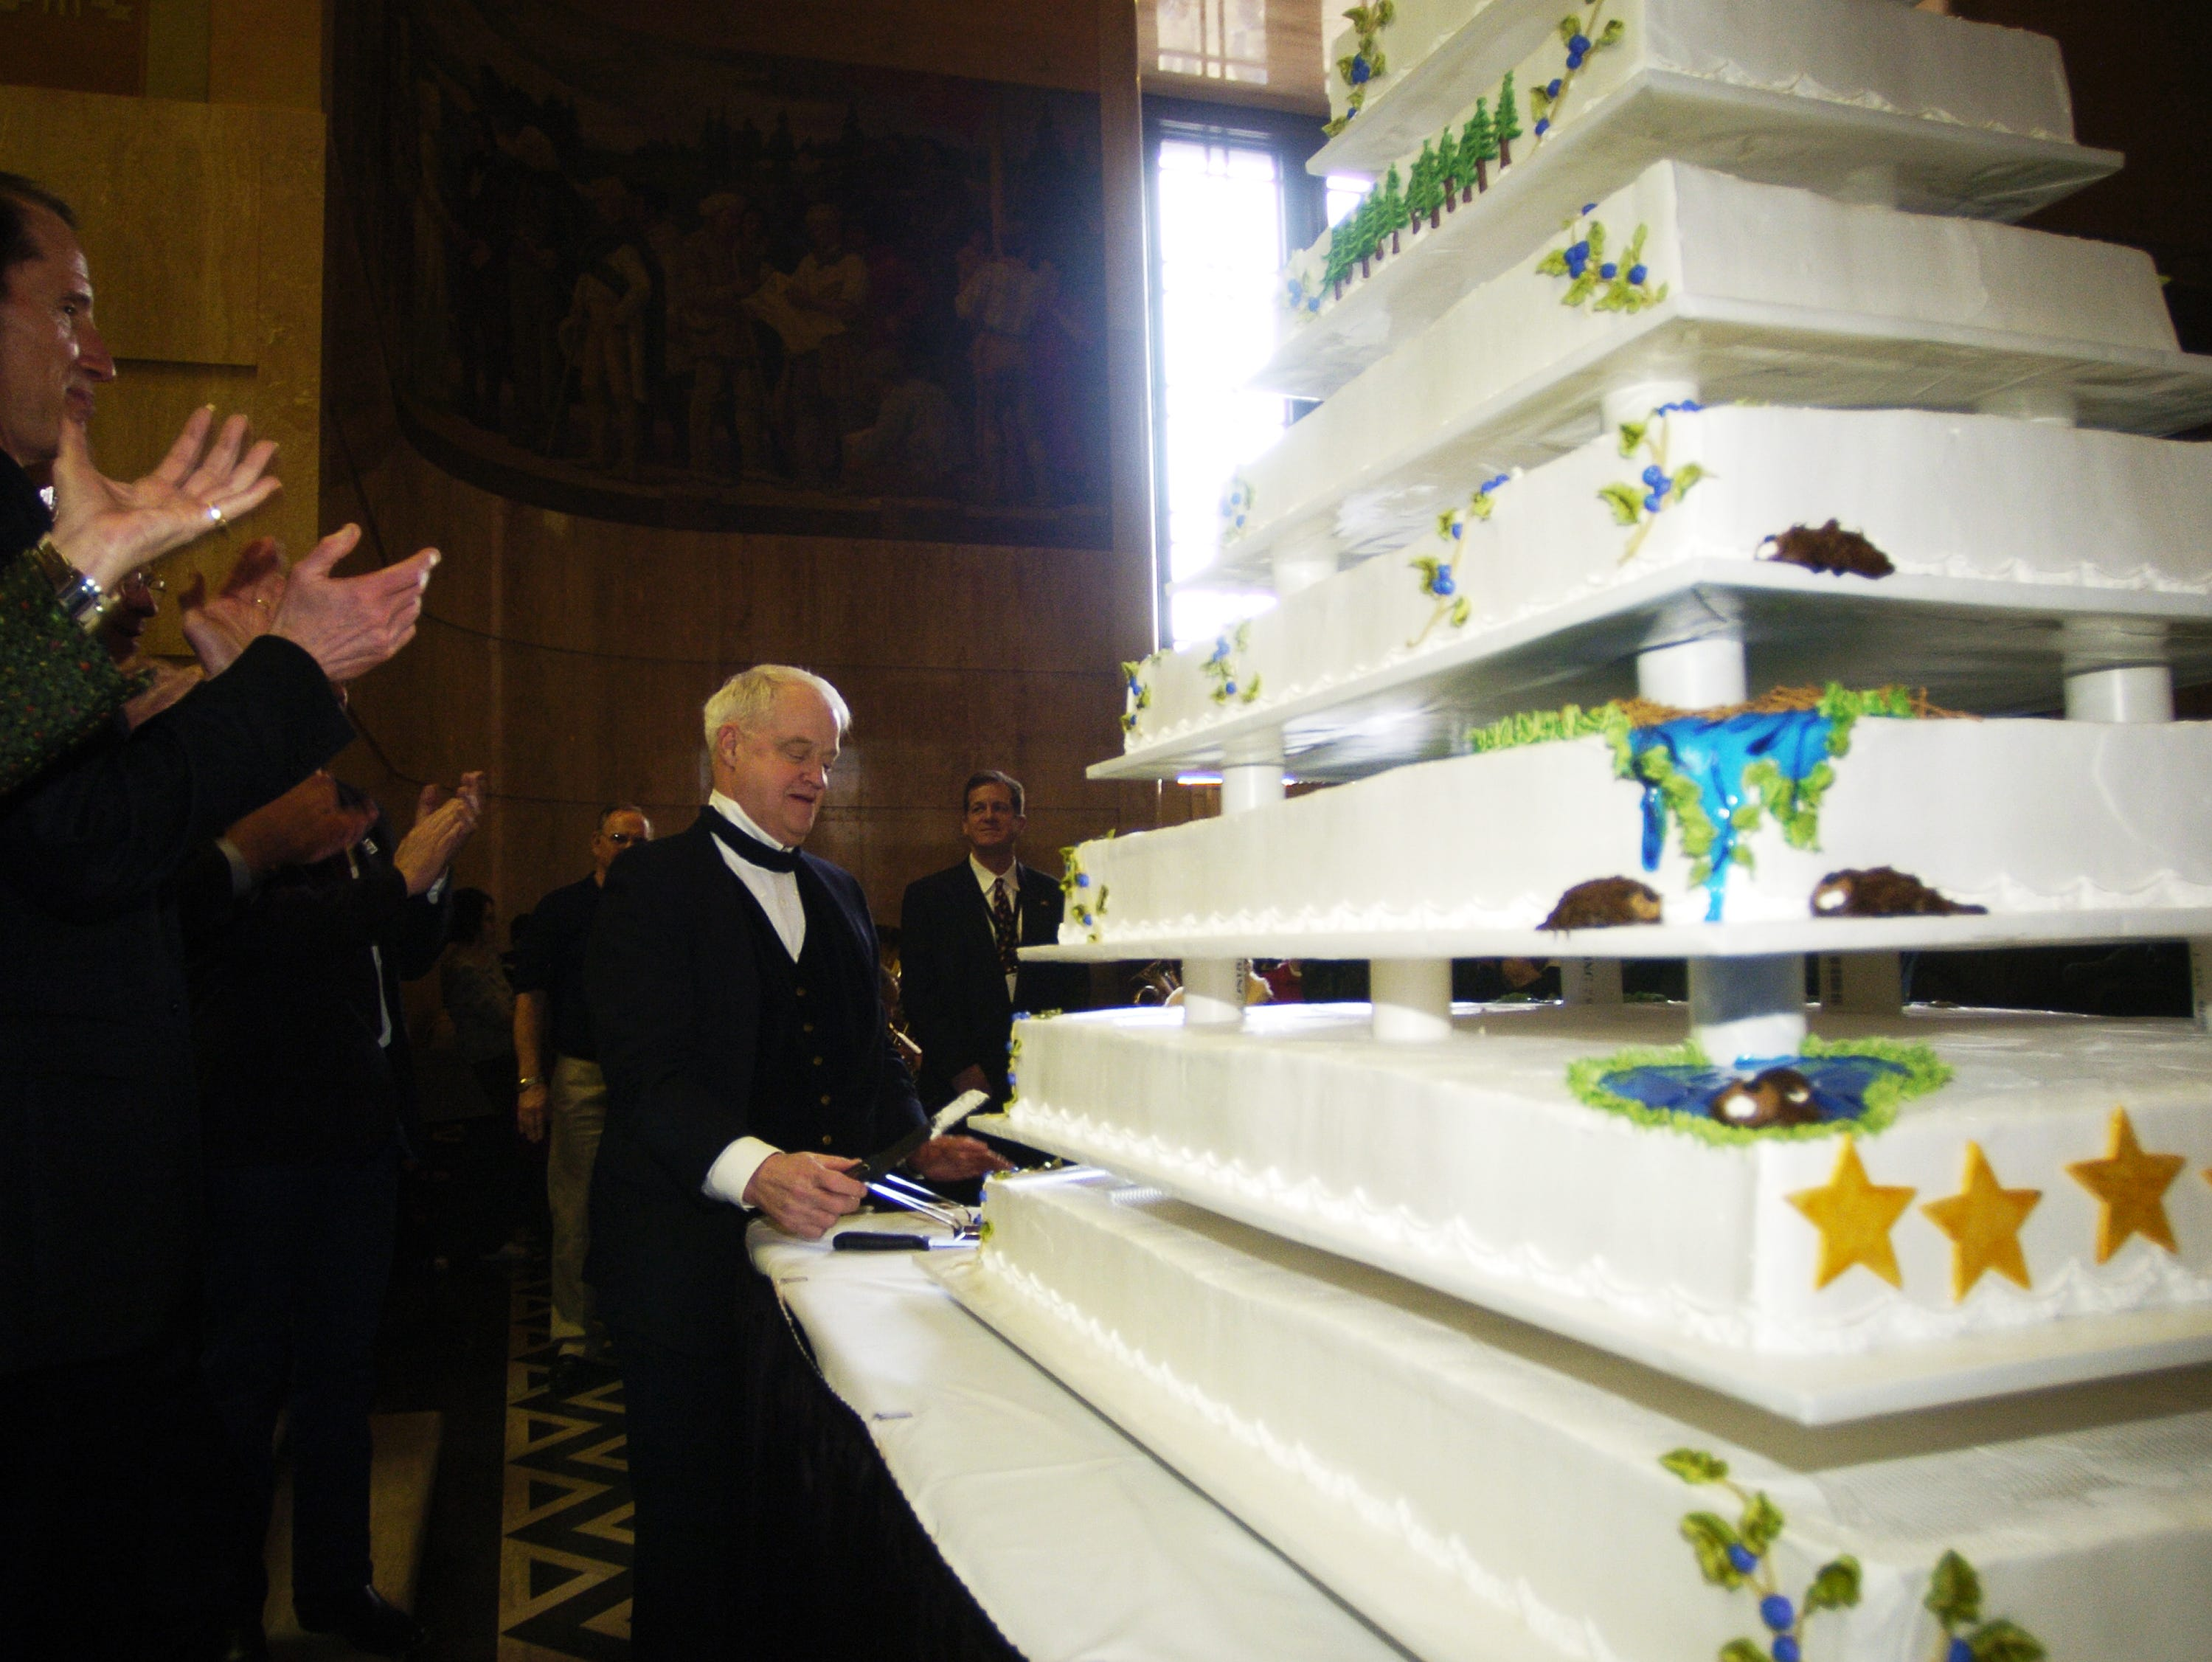 Senate president Peter Courtney cut the first slice into the birthday cake at Oregon's Sesquicentennial Birthday Celebration at the Oregon State Capitol on Feb. 14, 2009.